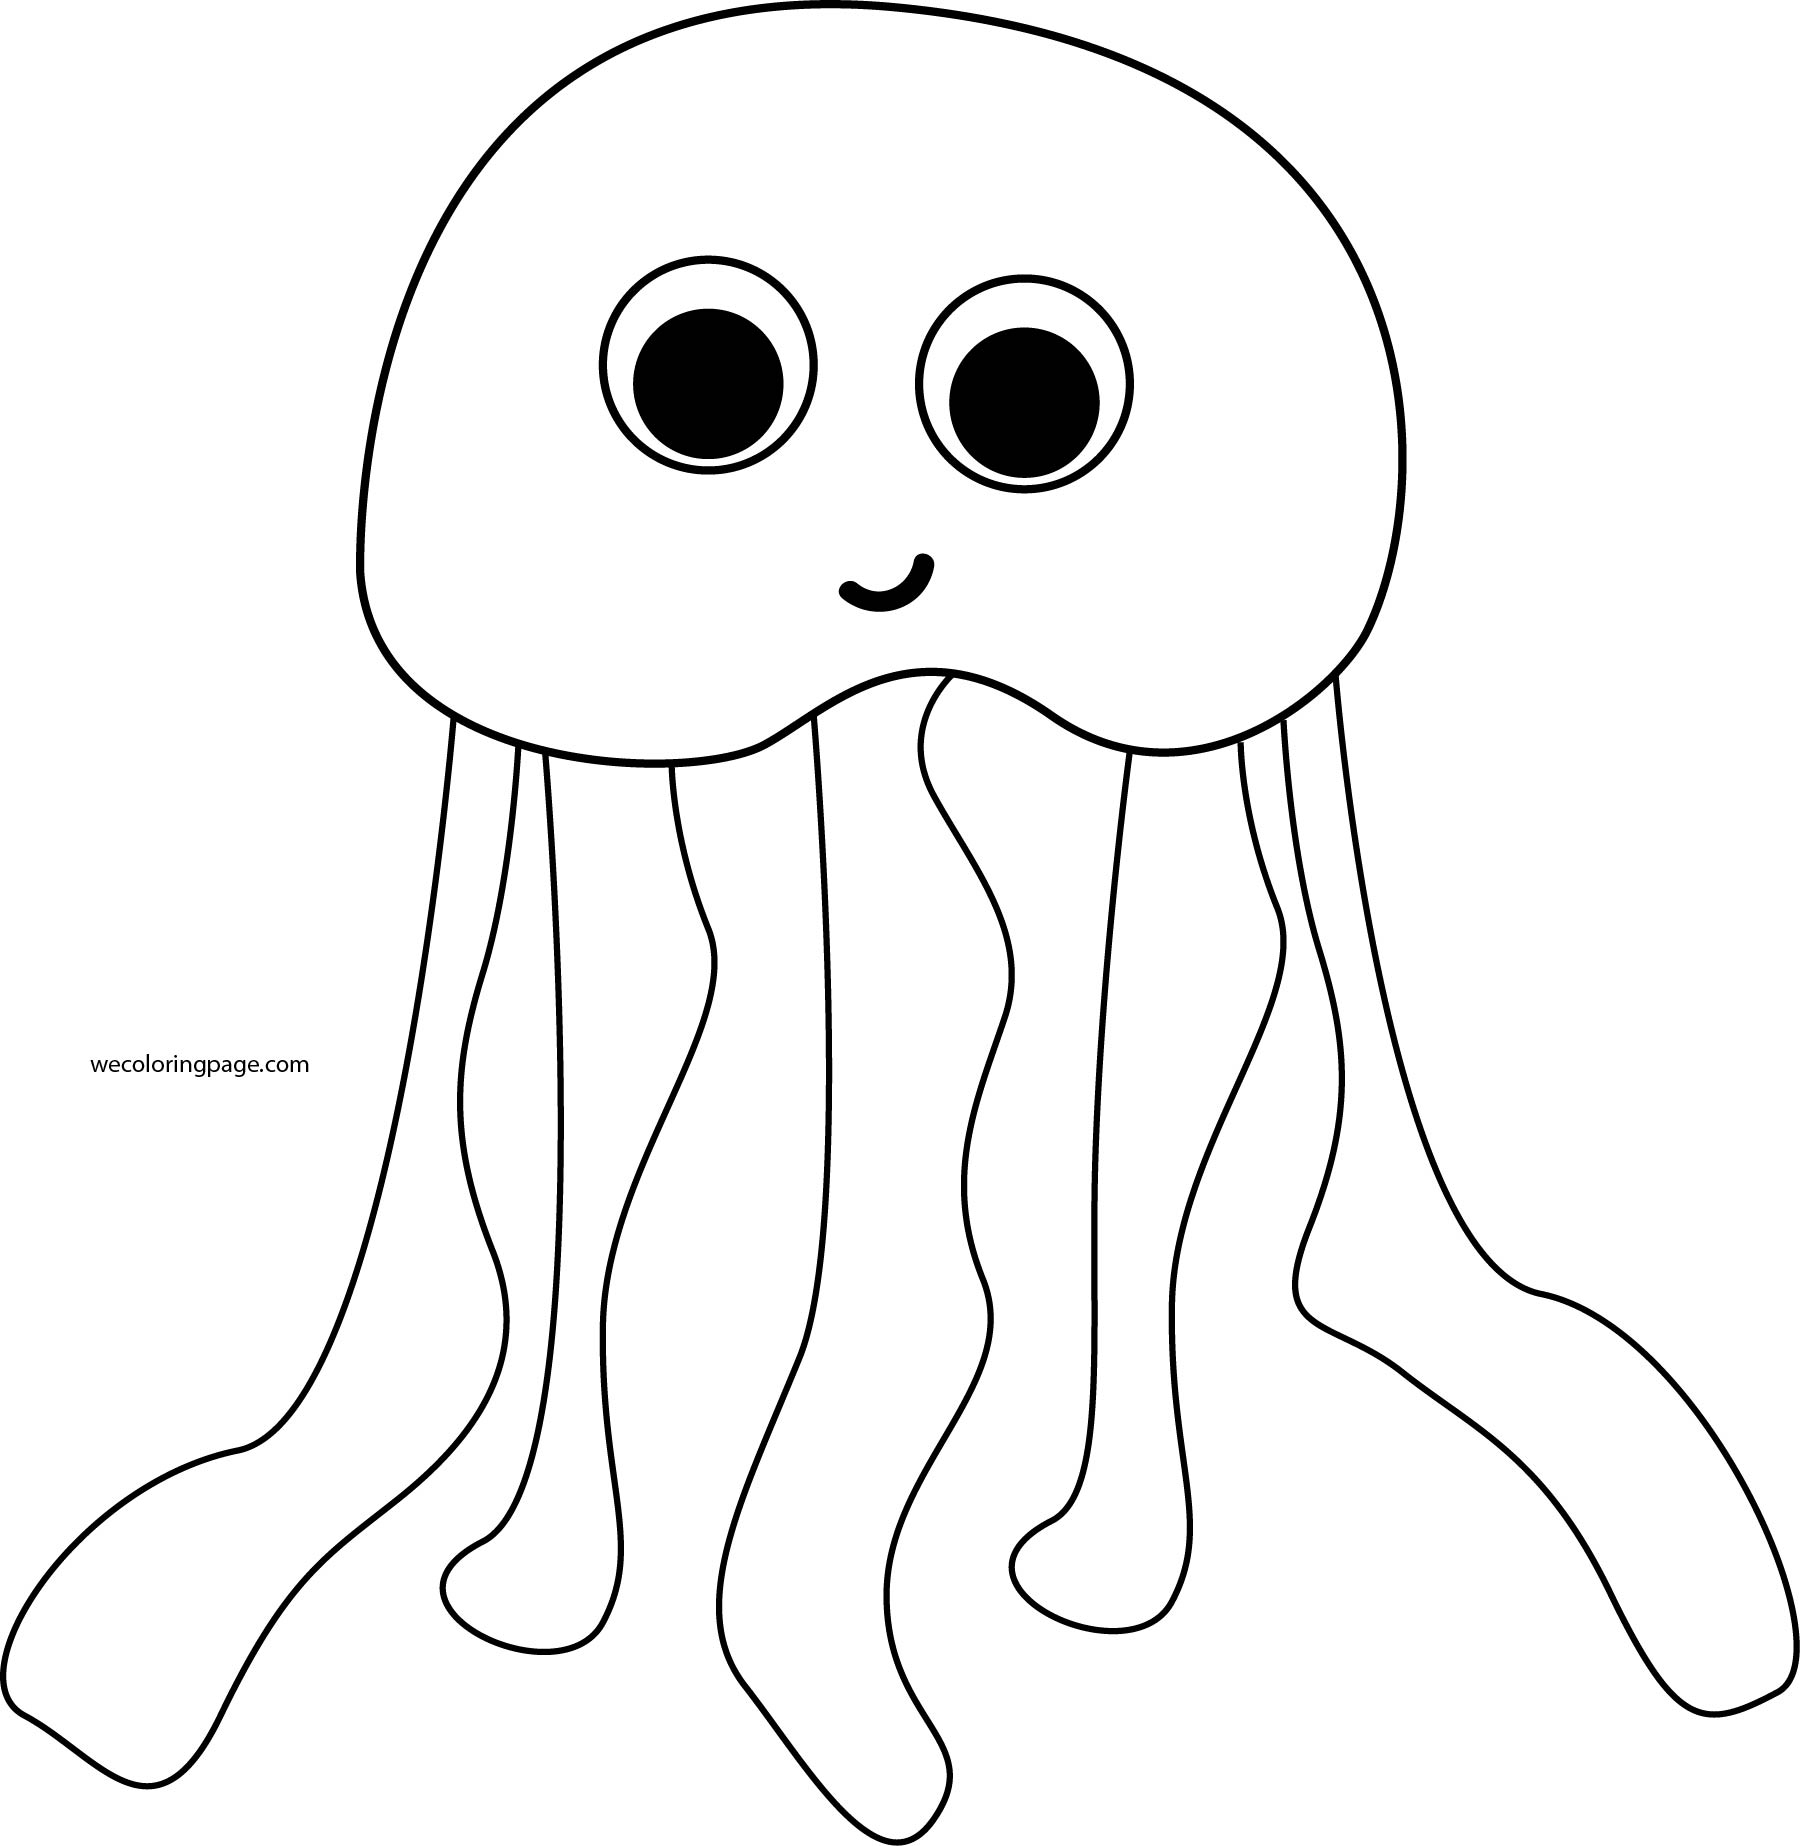 jellyfish coloring pages - Jellyfish Coloring Pages